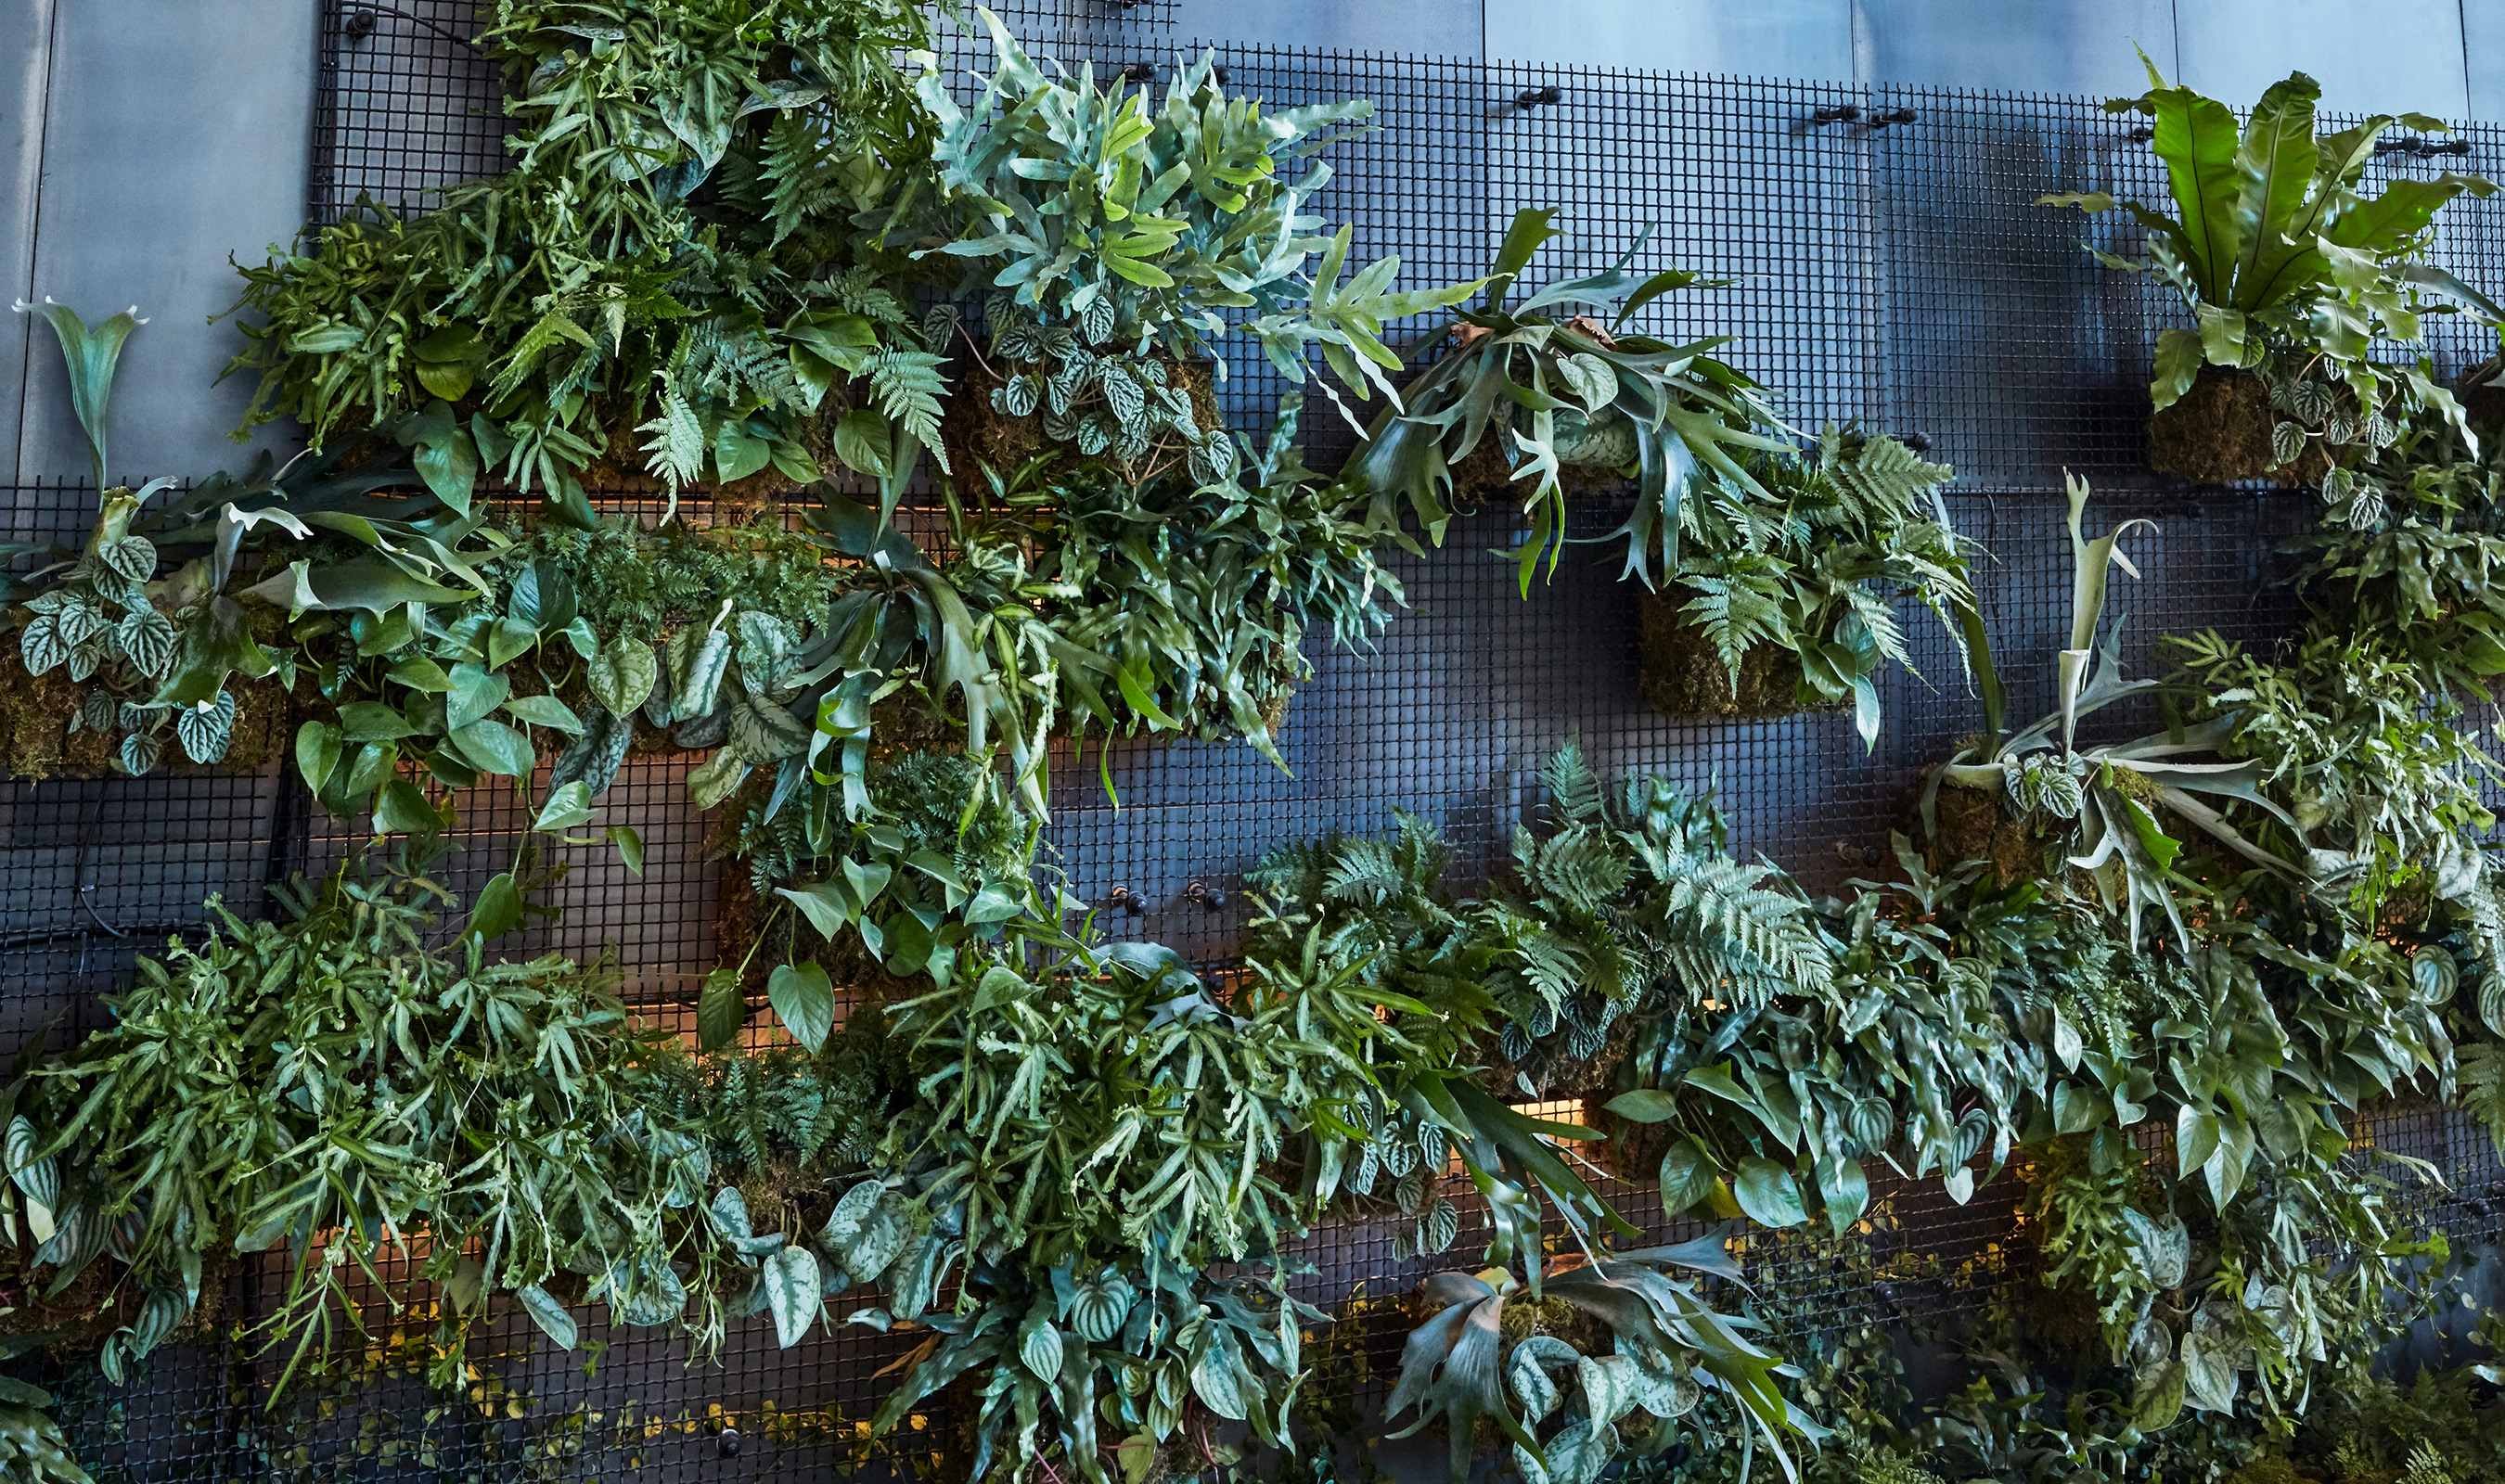 Banker Wire's I-21 woven wire mesh, which is powder-coated in black, helped transform the vertical green wall into a living work of art by providing a grid to affix the welded baskets to